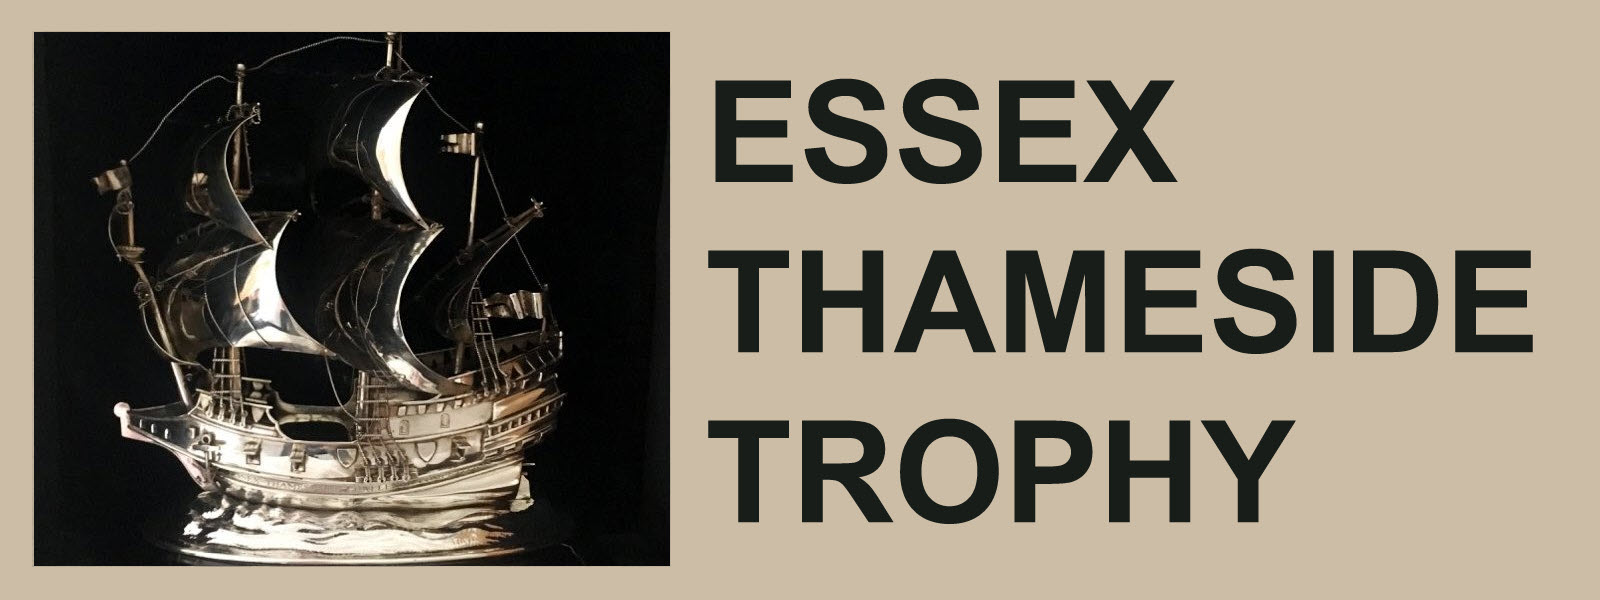 Essex Thameside Trophy Re-launches